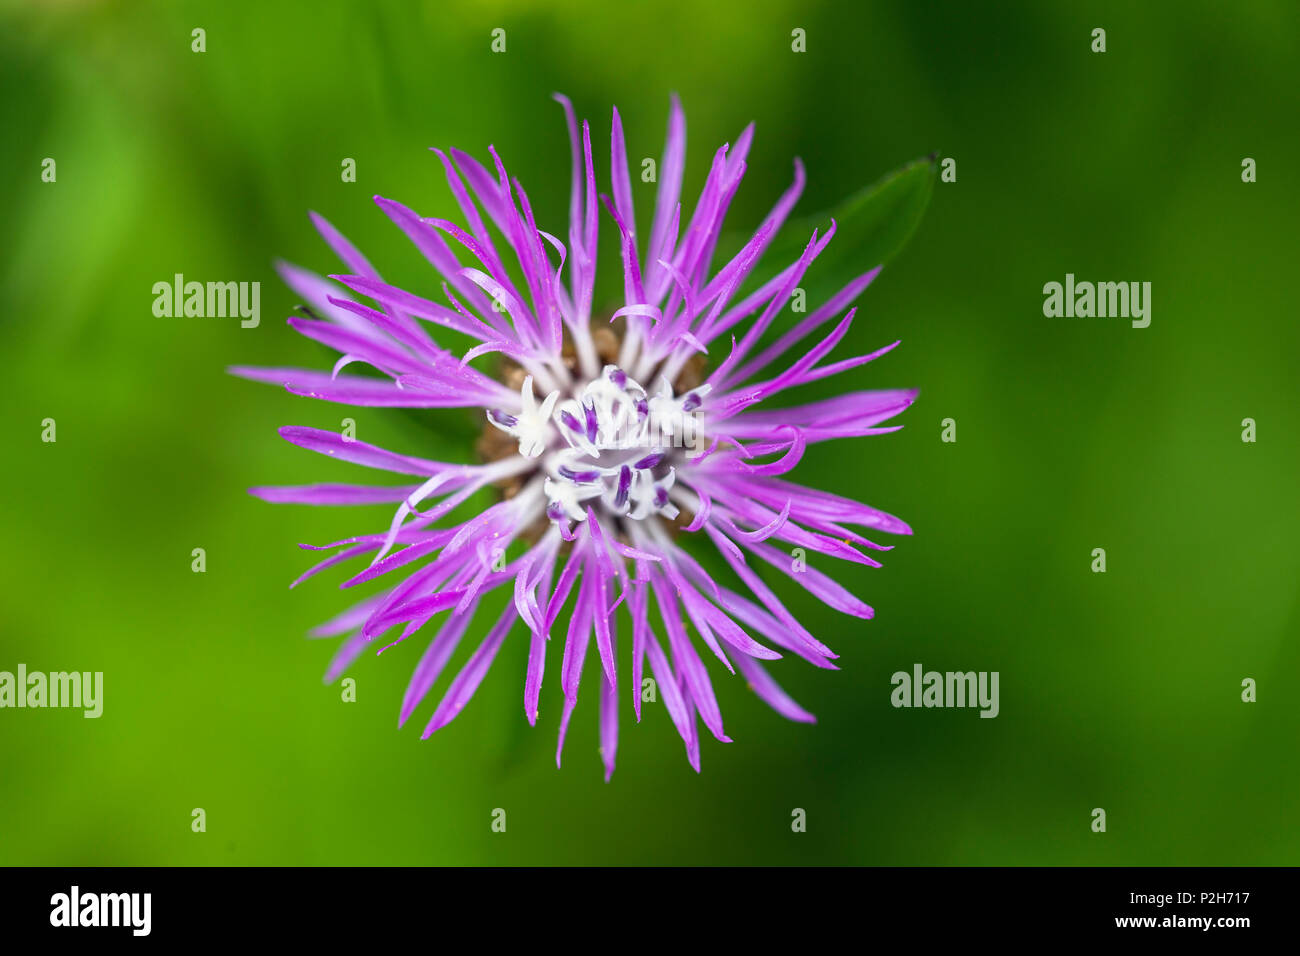 Wildflower, Centaurea spec., Upper Bavaria, Germany - Stock Image